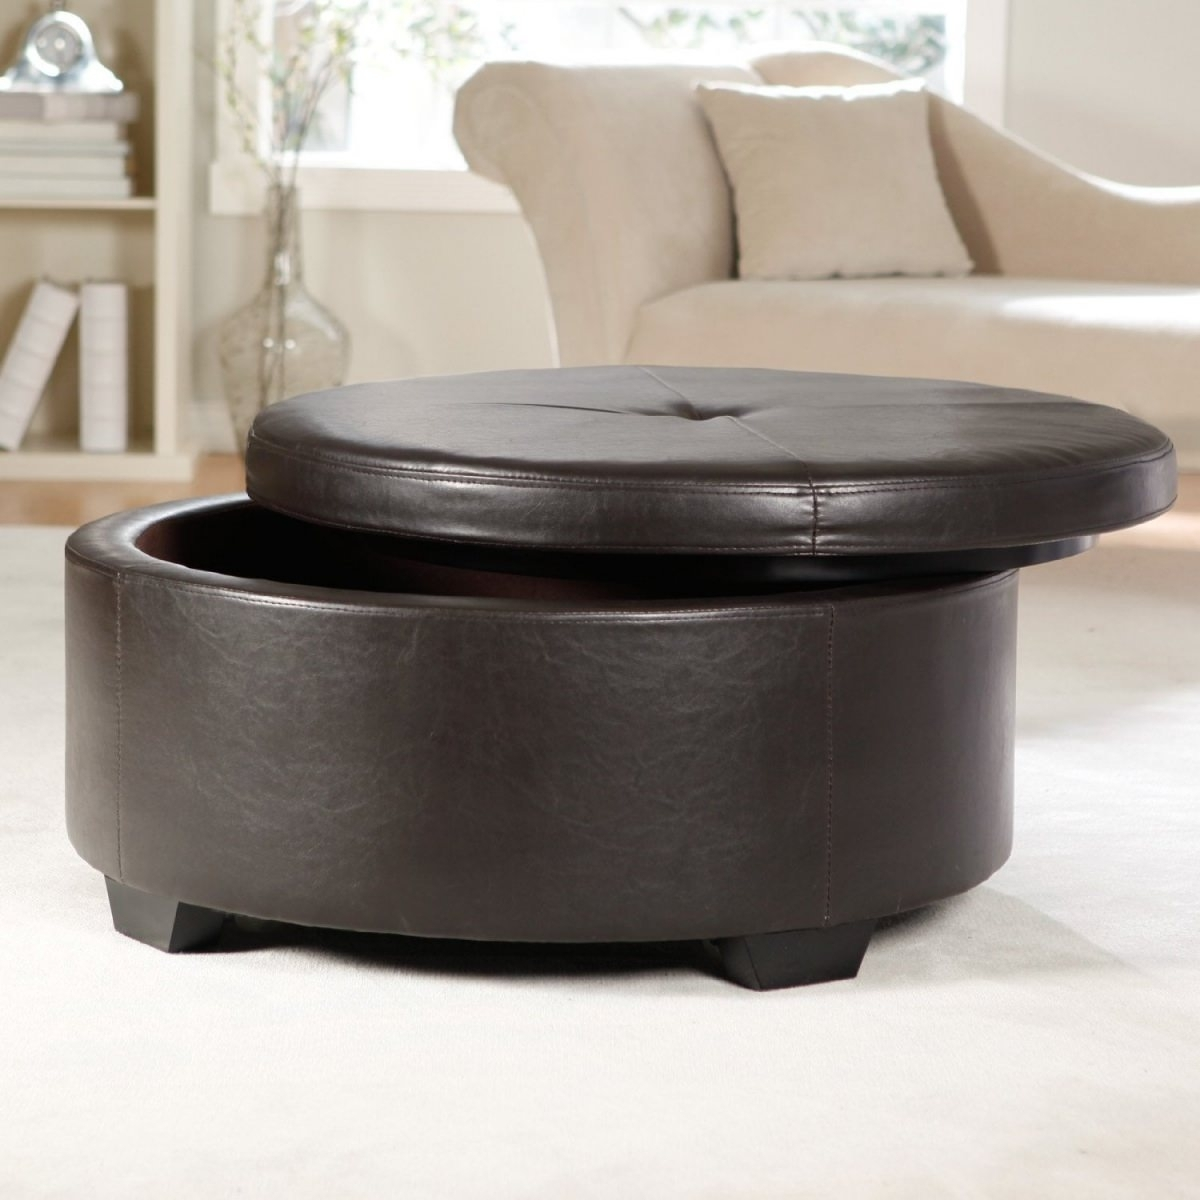 Reupholster Round Coffee Table Ottoman | Sushi Ichimura Decor in Round Button Tufted Coffee Tables (Image 18 of 30)